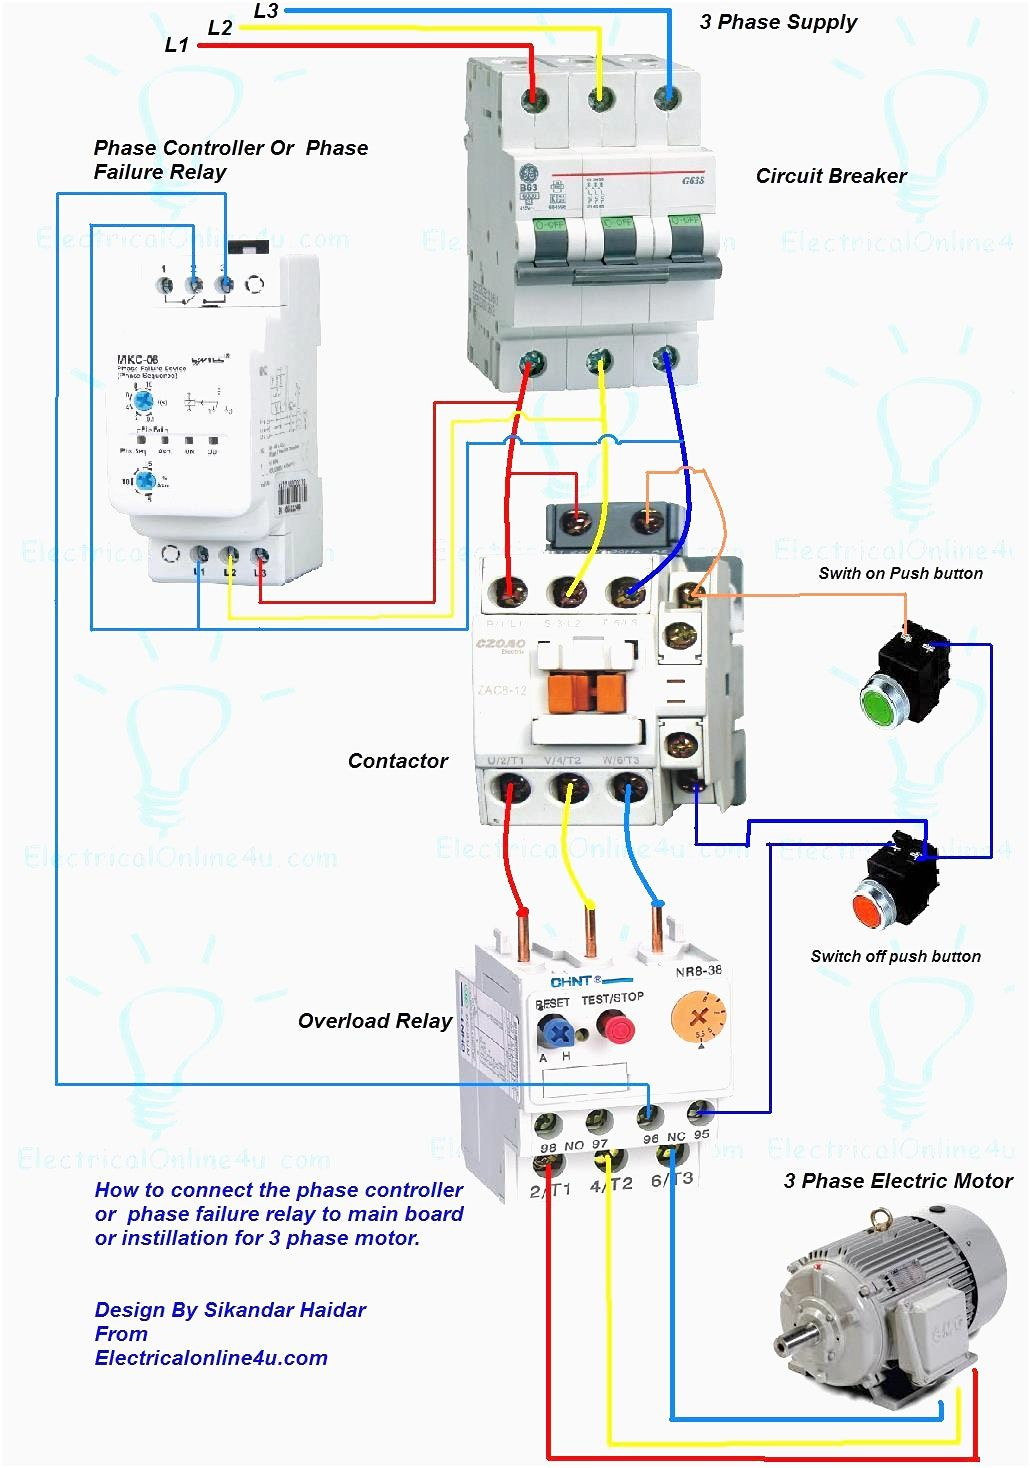 medium resolution of wiring diagram for motor starter 3 phase controller failure relay 6 wire 3 phase motor wiring 3 phase motor starter relay wiring diagram